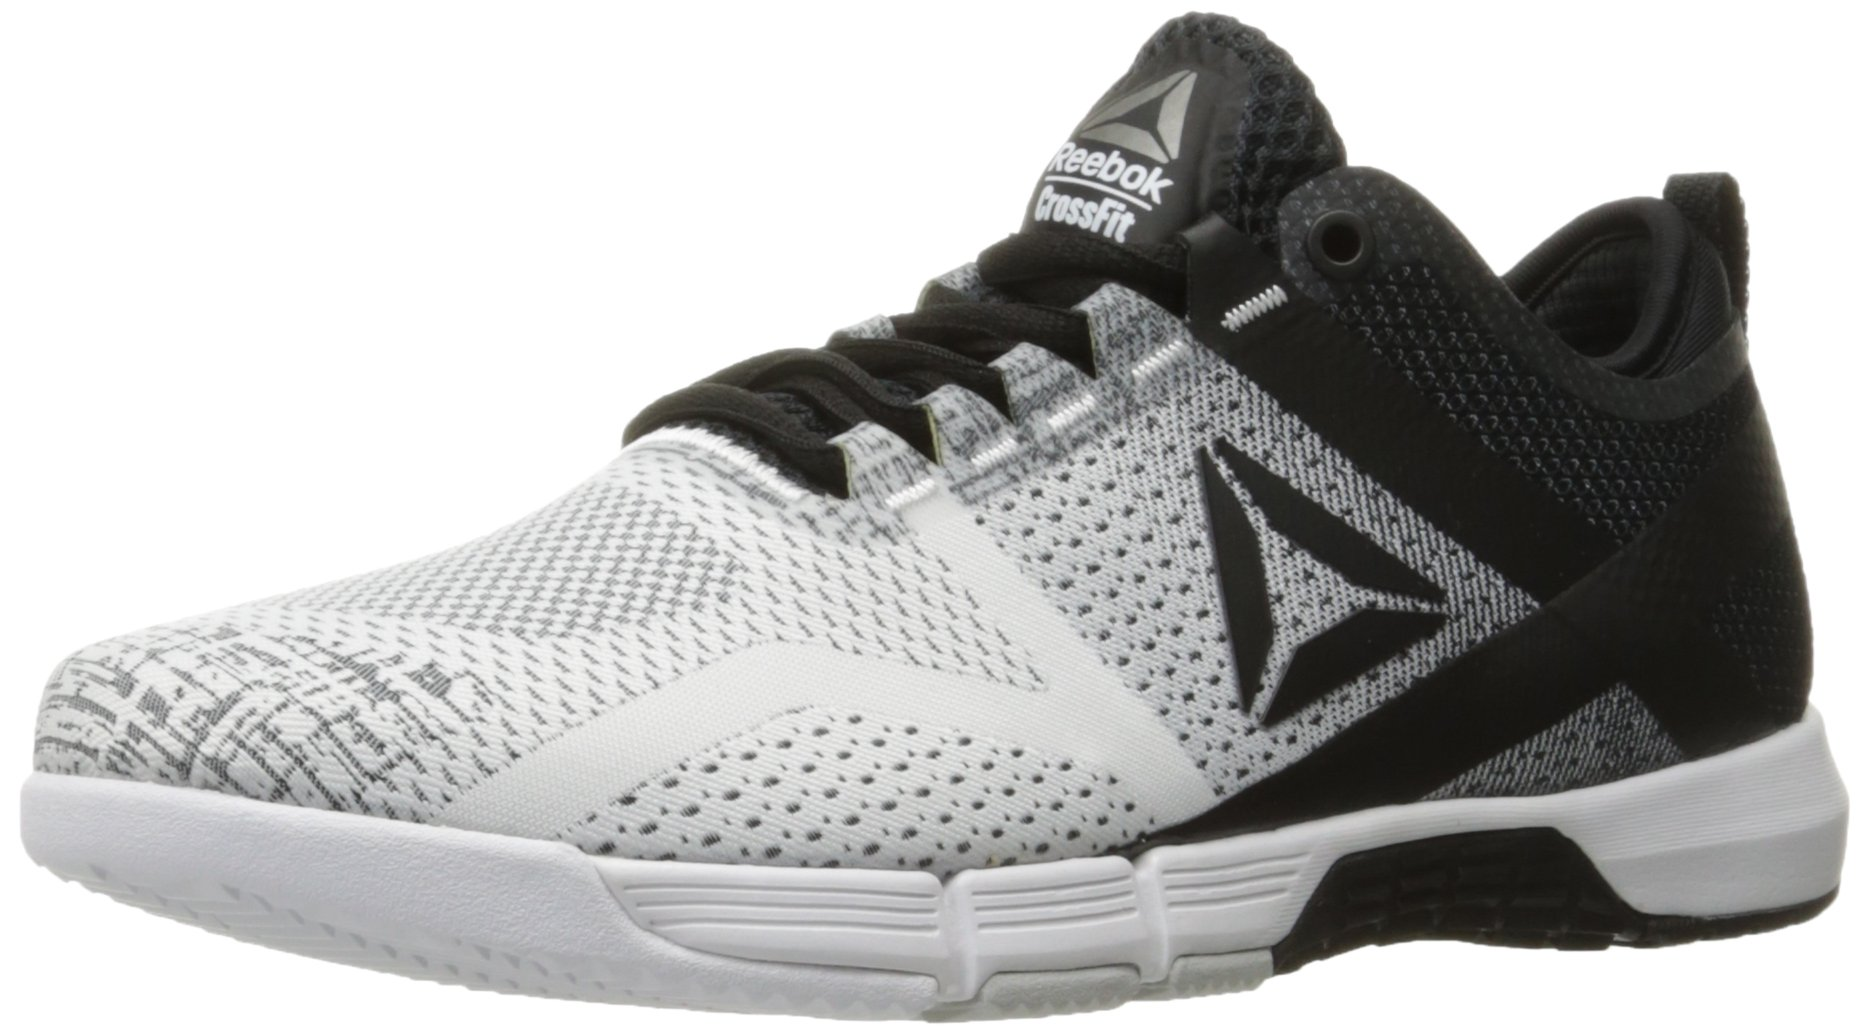 Reebok Women's Crossfit Grace TR Running Shoe, White/Black/Cloud Grey/Pewter, 9 M US